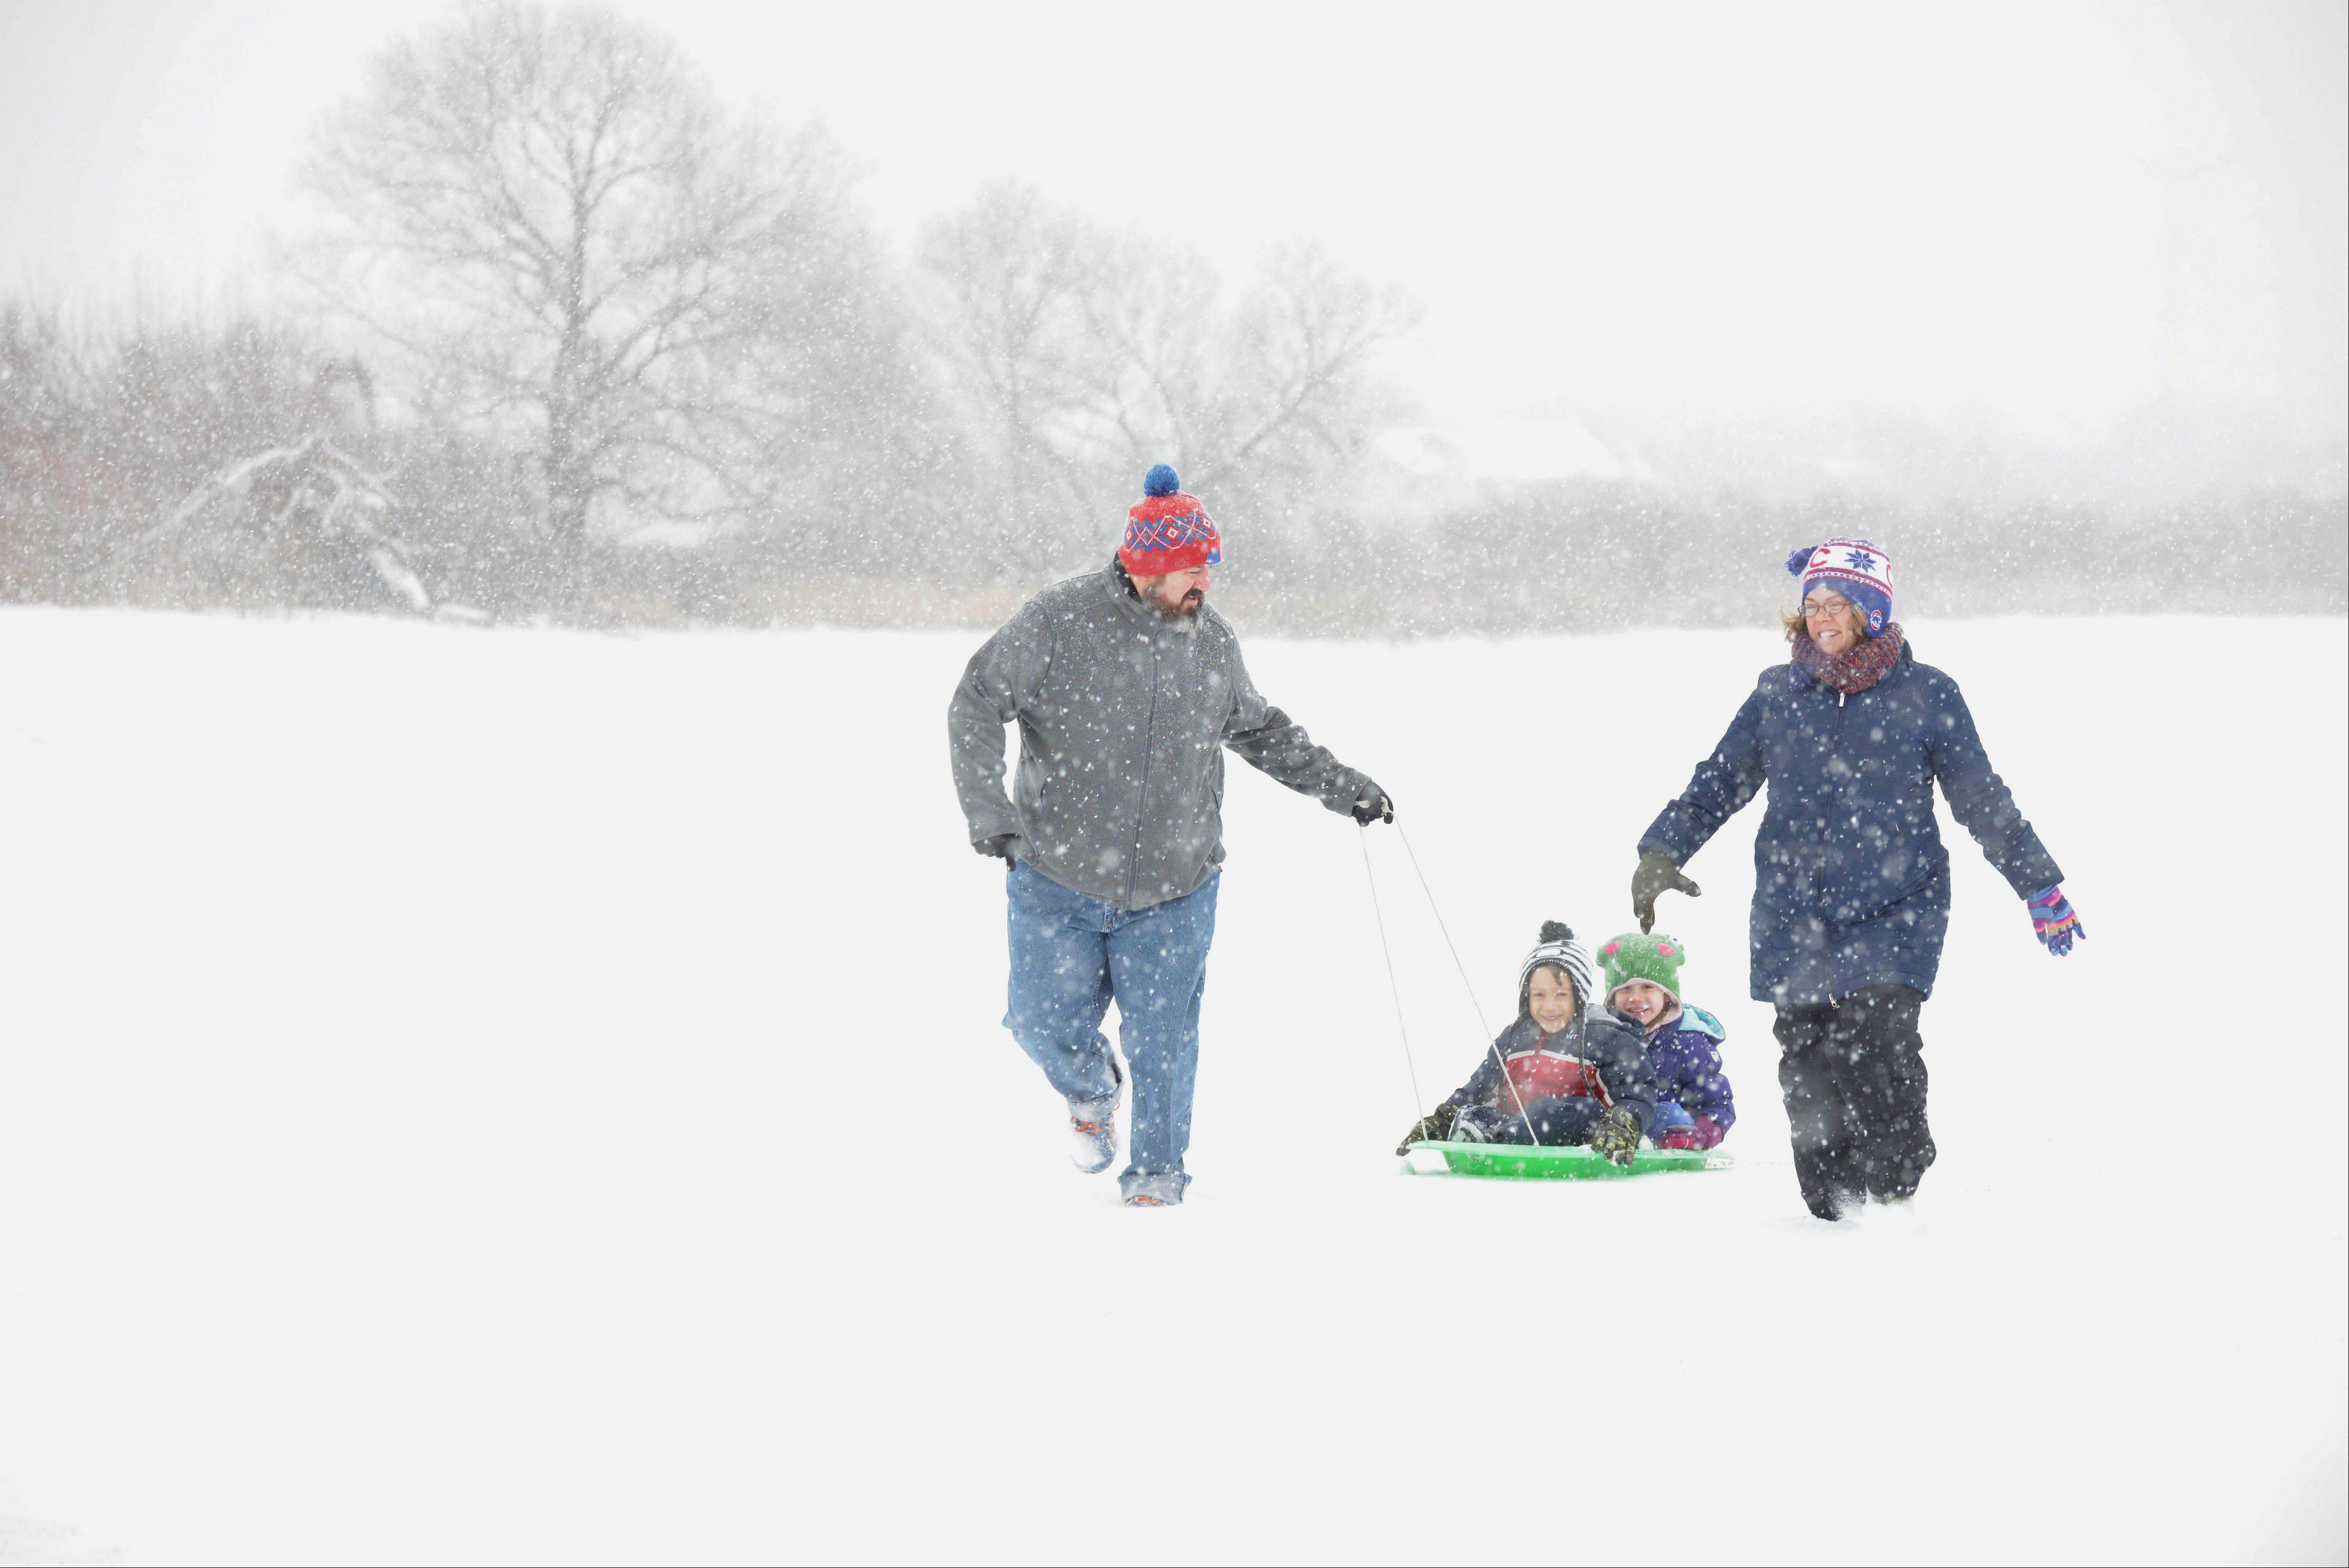 "Kevin and Eileen Woosley, of Aurora, pull their children Martin and Molly, both 6, through a snow covered field in Aurora Wednesday. ""It's like the snow is creating a fresh palette for the year to make an imprint on,"" Kevin commented."